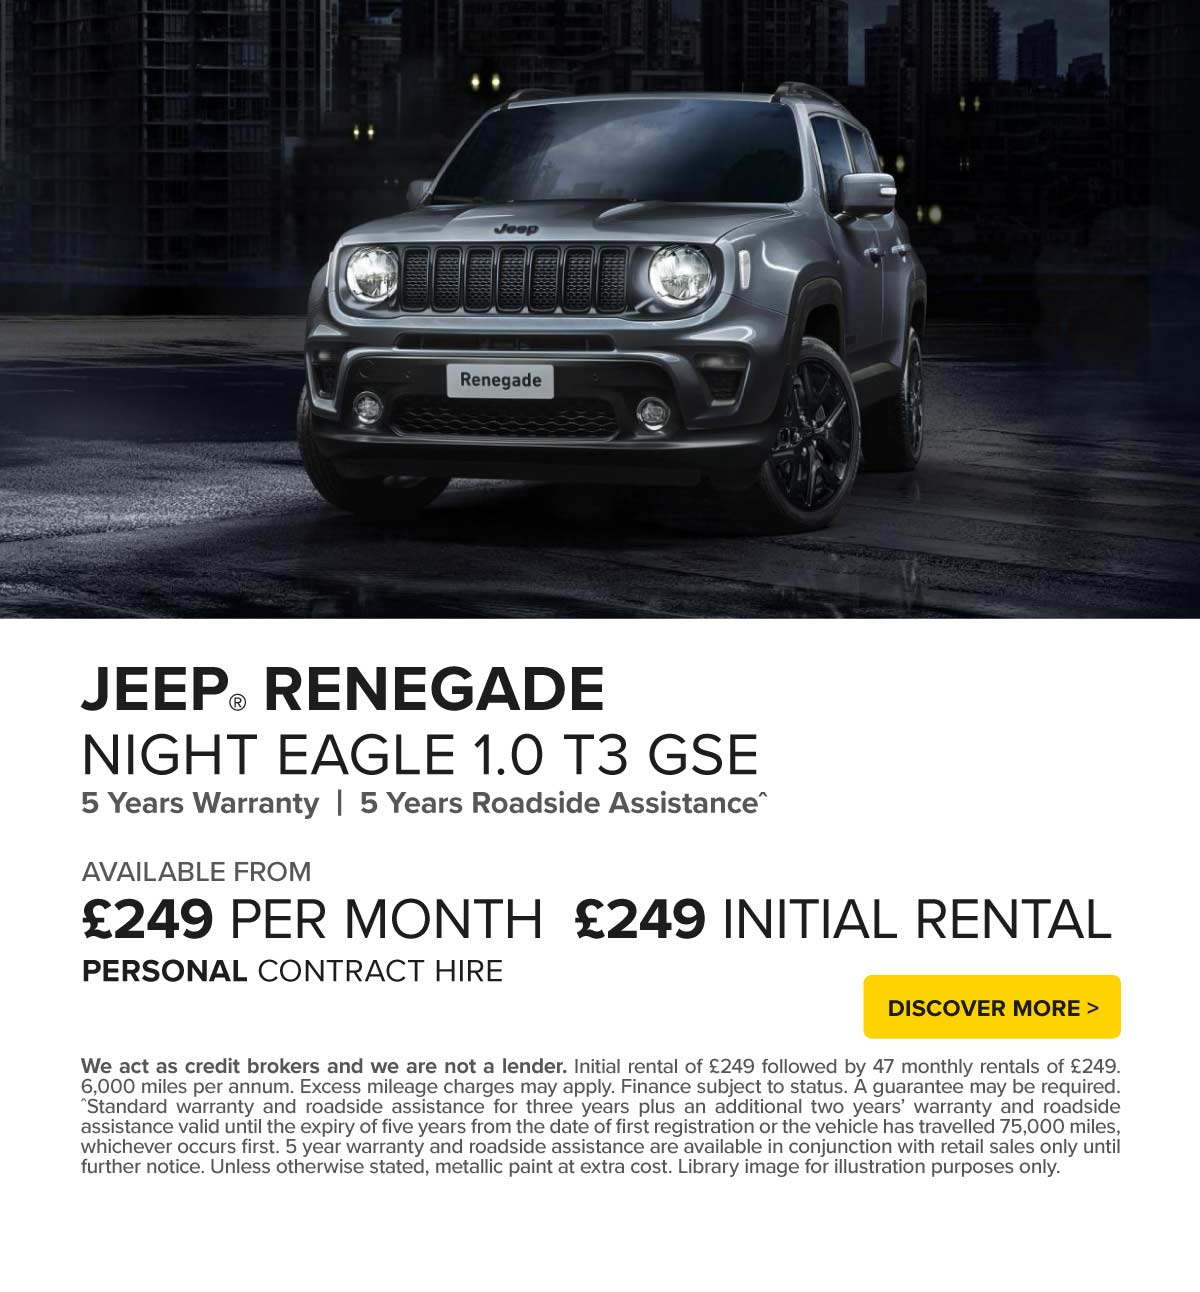 (Jeep Renegade) Jeep Renegade Q4 171019